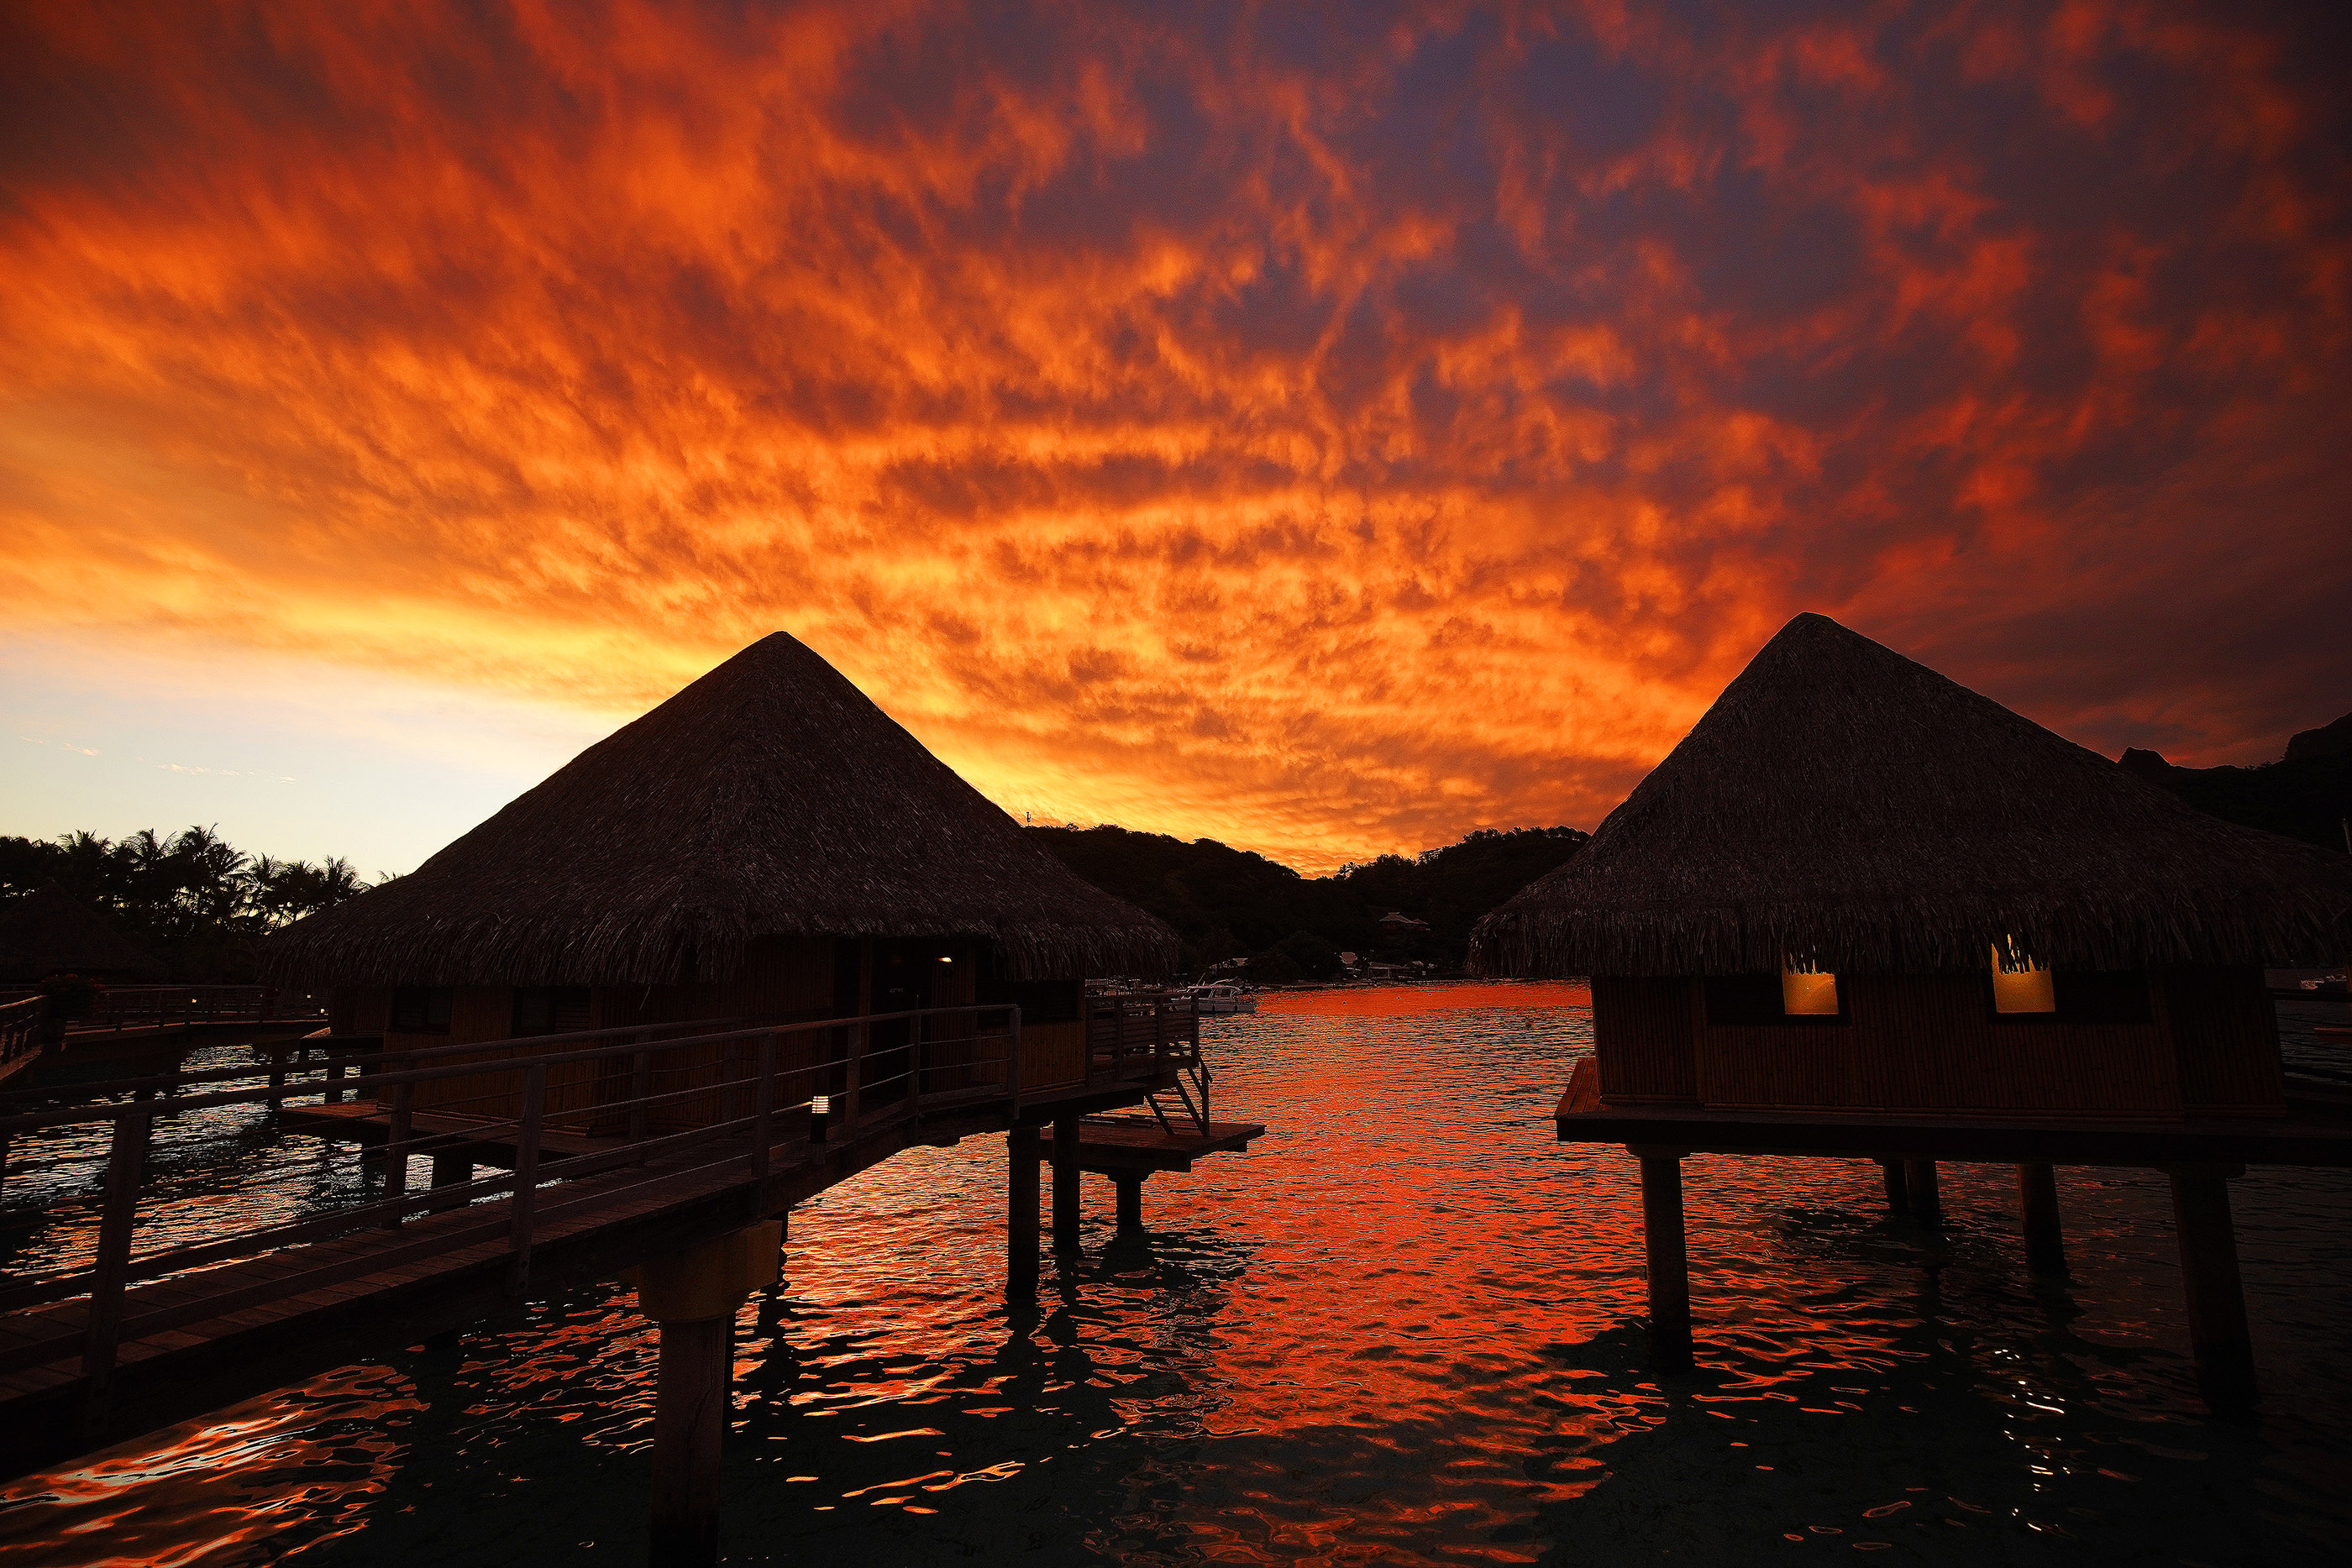 Overwater bungalows are silhouetted in Bora Bora on May 28, 2019.